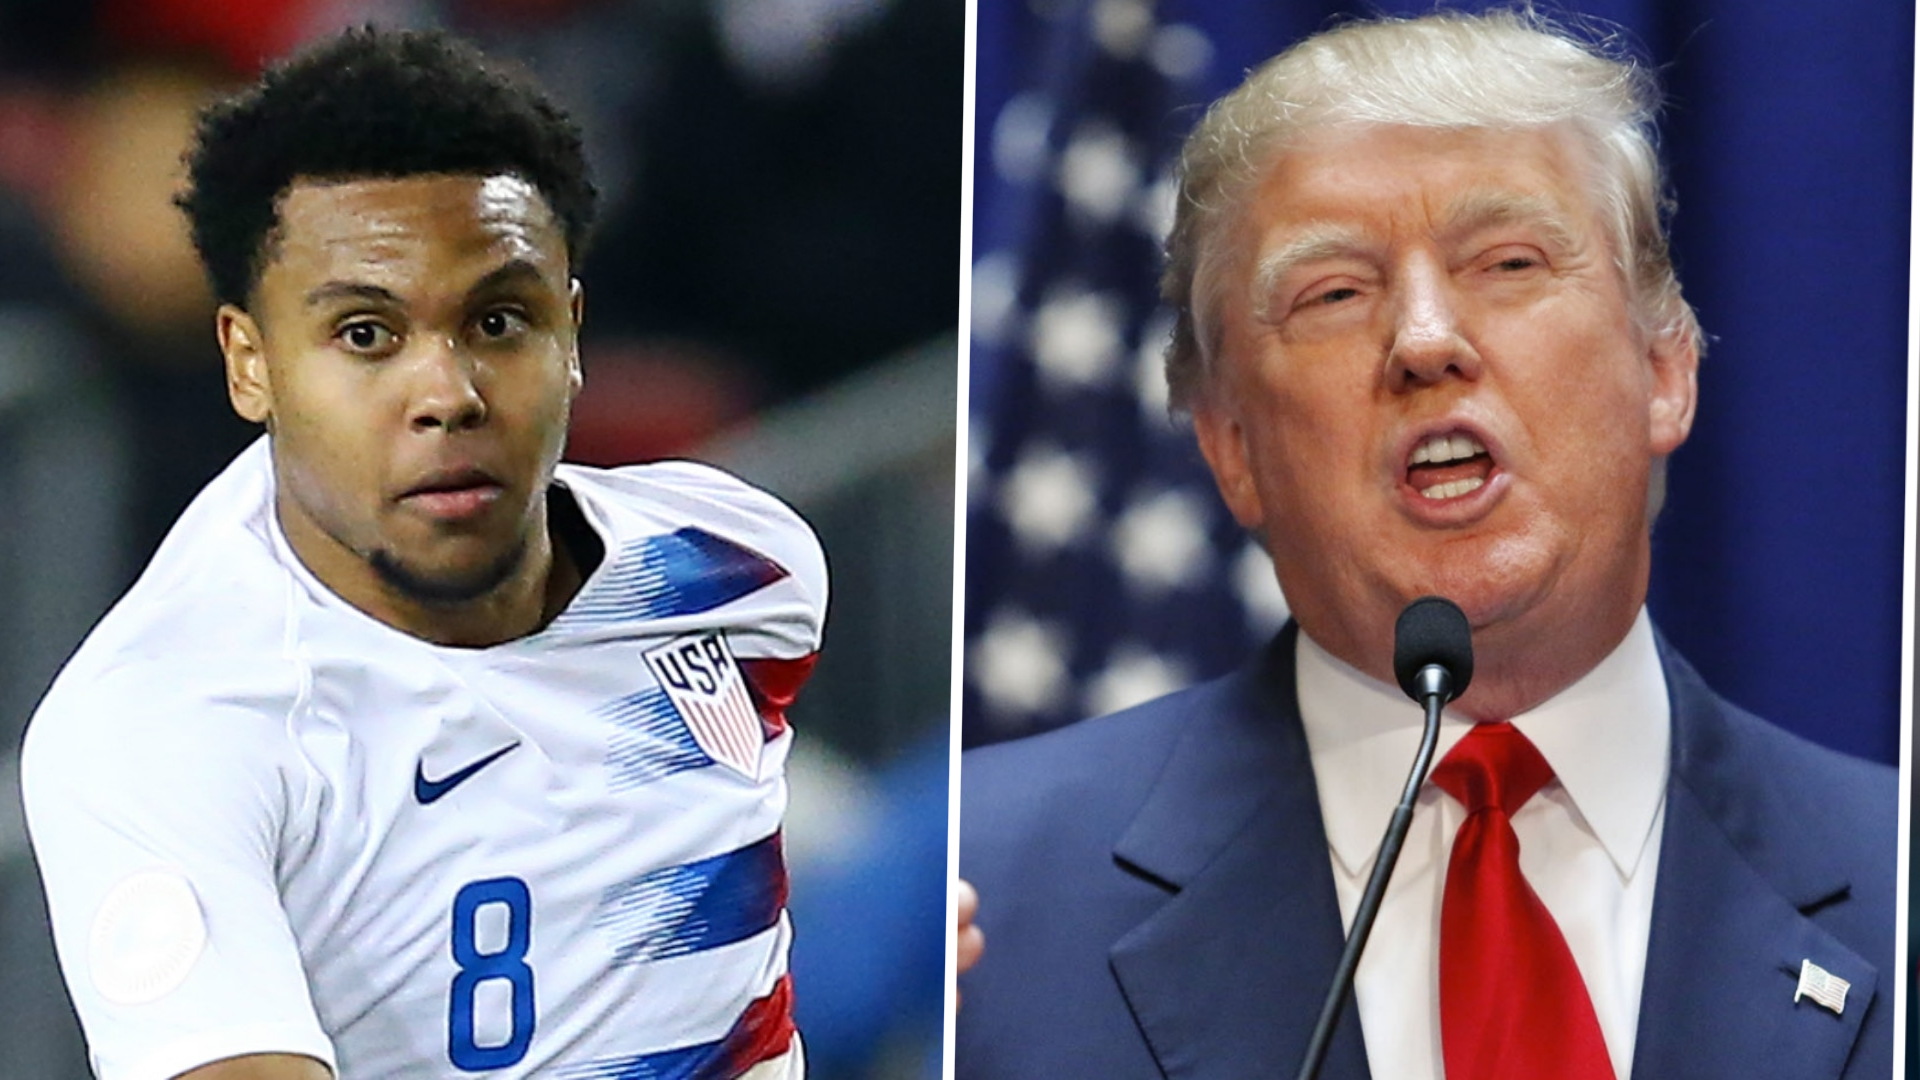 'I think he's ignorant' - McKennie hits out at 'racist' Trump